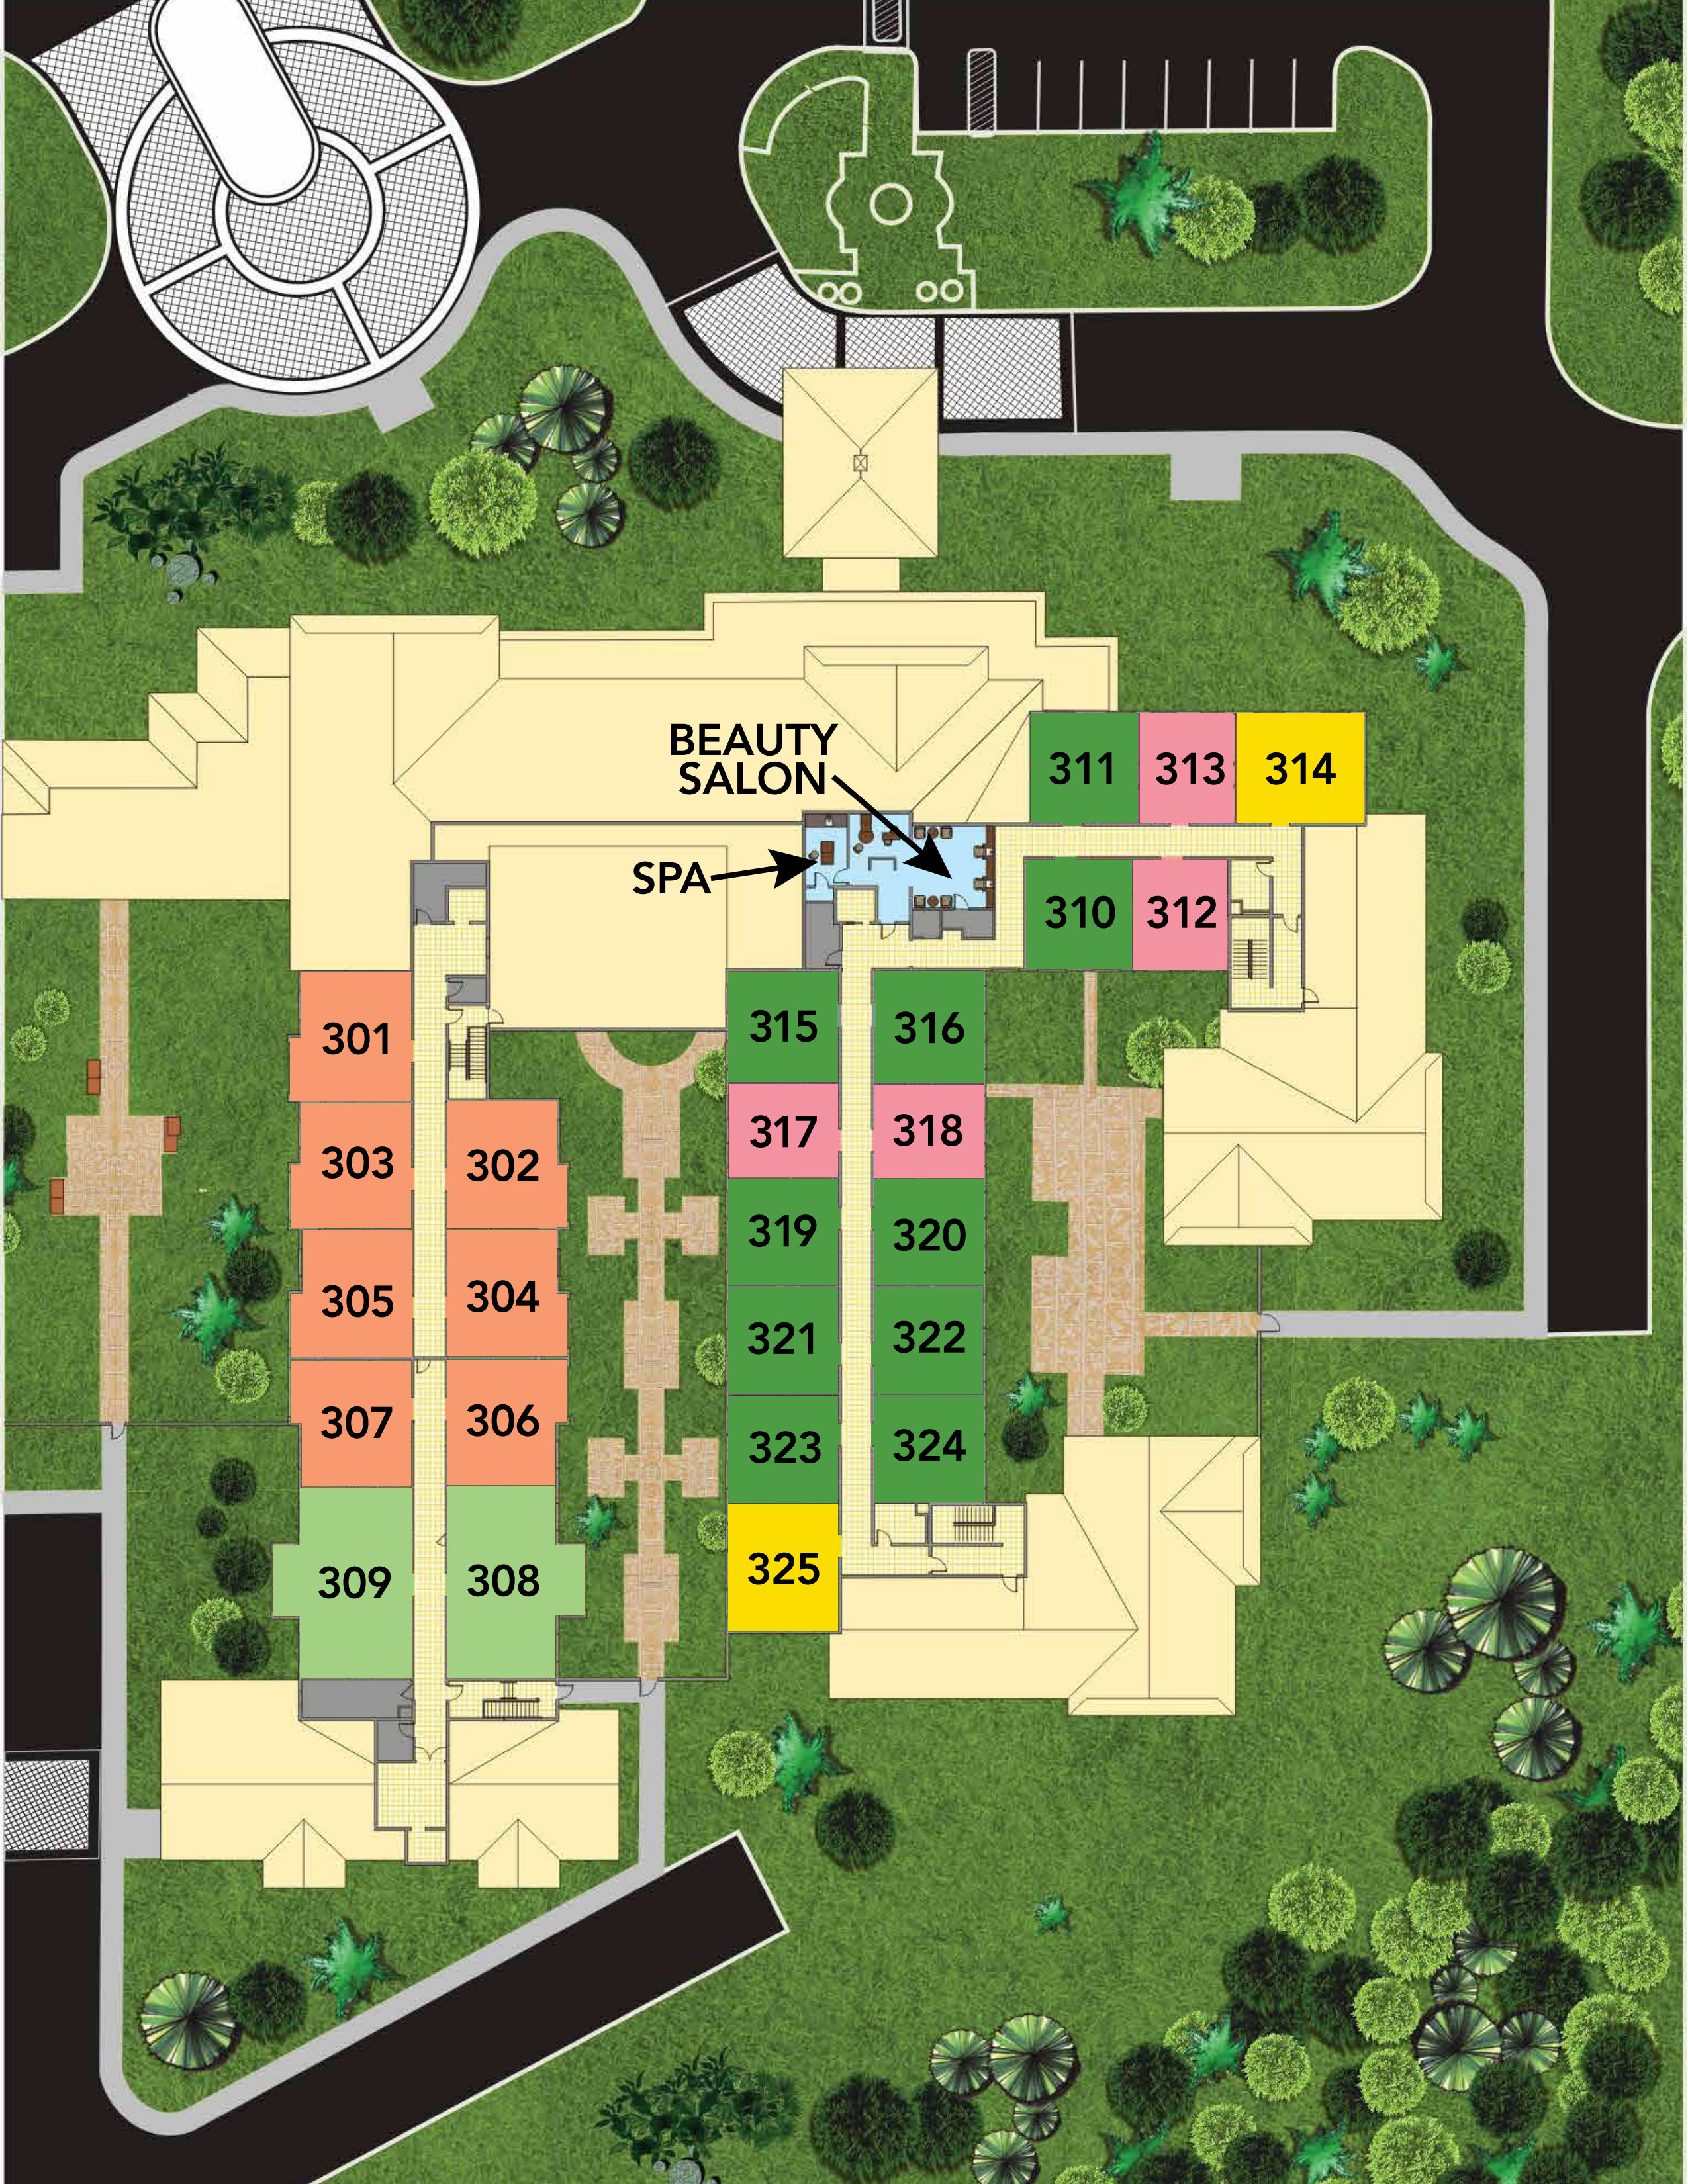 Naples FL senior living community site plan